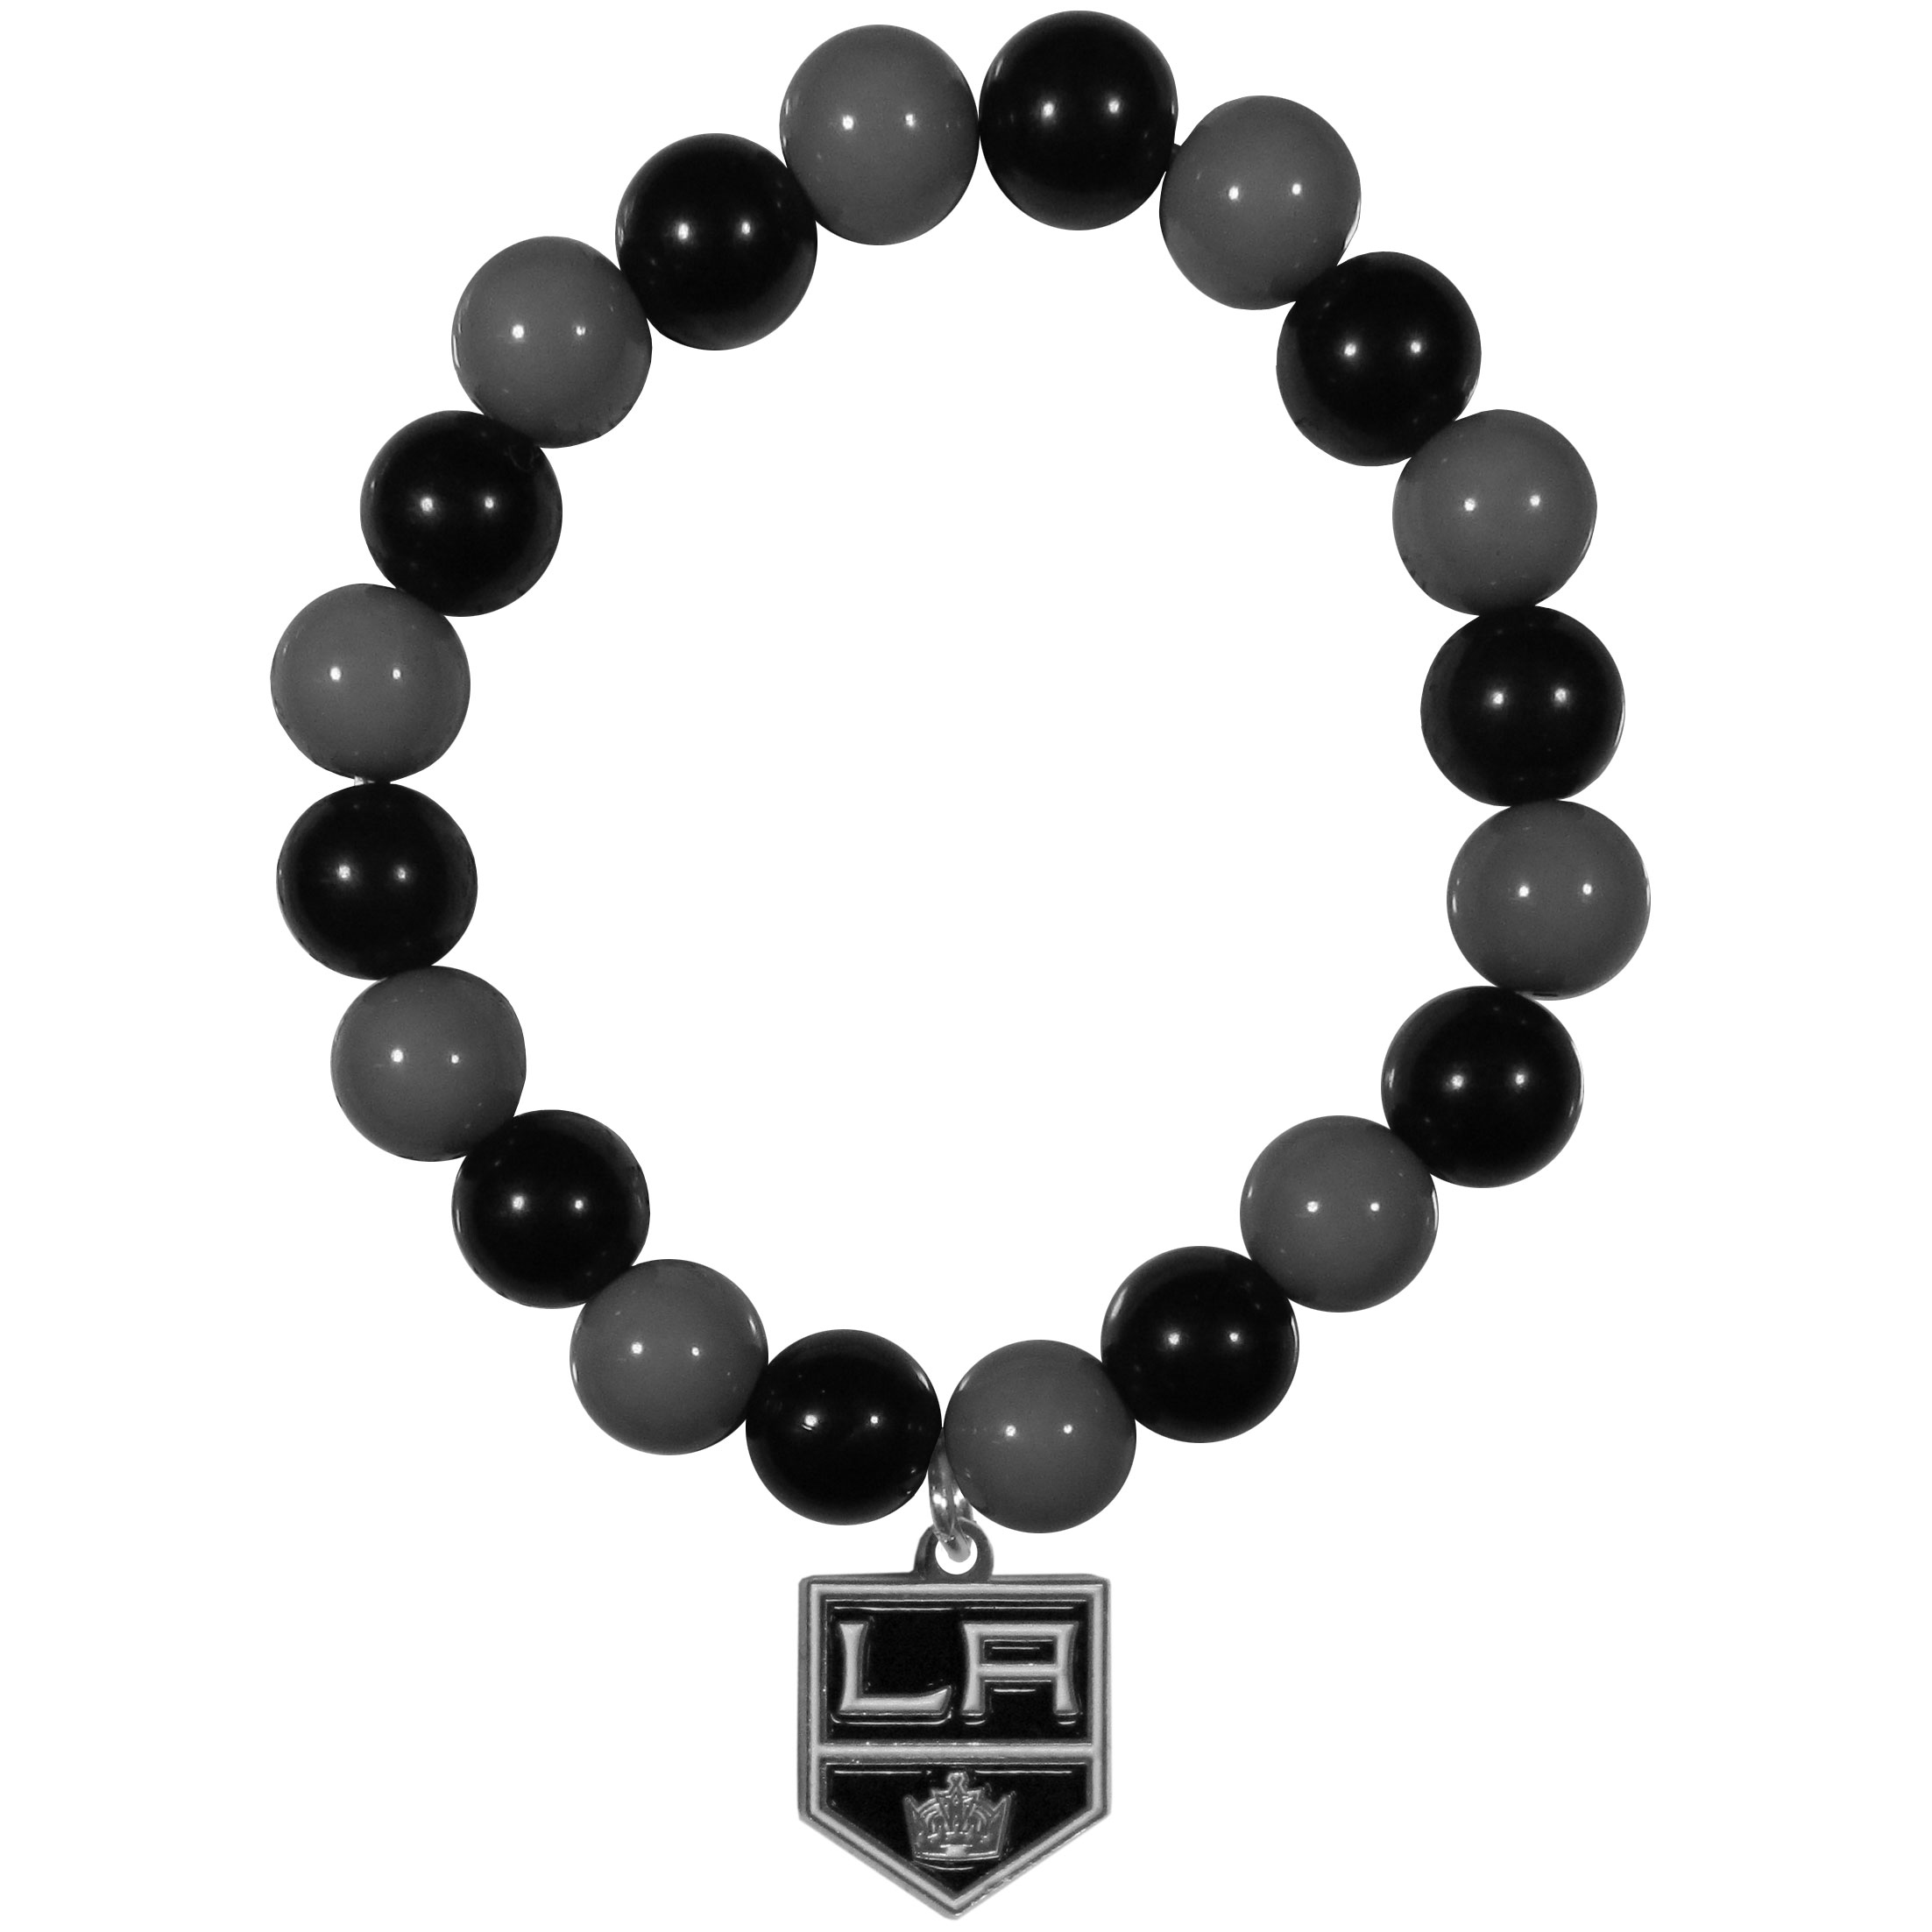 Los Angeles Kings® Fan Bead Bracelet - Flash your Los Angeles Kings® spirit with this bright stretch bracelet. This new bracelet features multicolored team beads on stretch cord with a nickel-free enameled chrome team charm. This bracelet adds the perfect pop of color to your game day accessories.